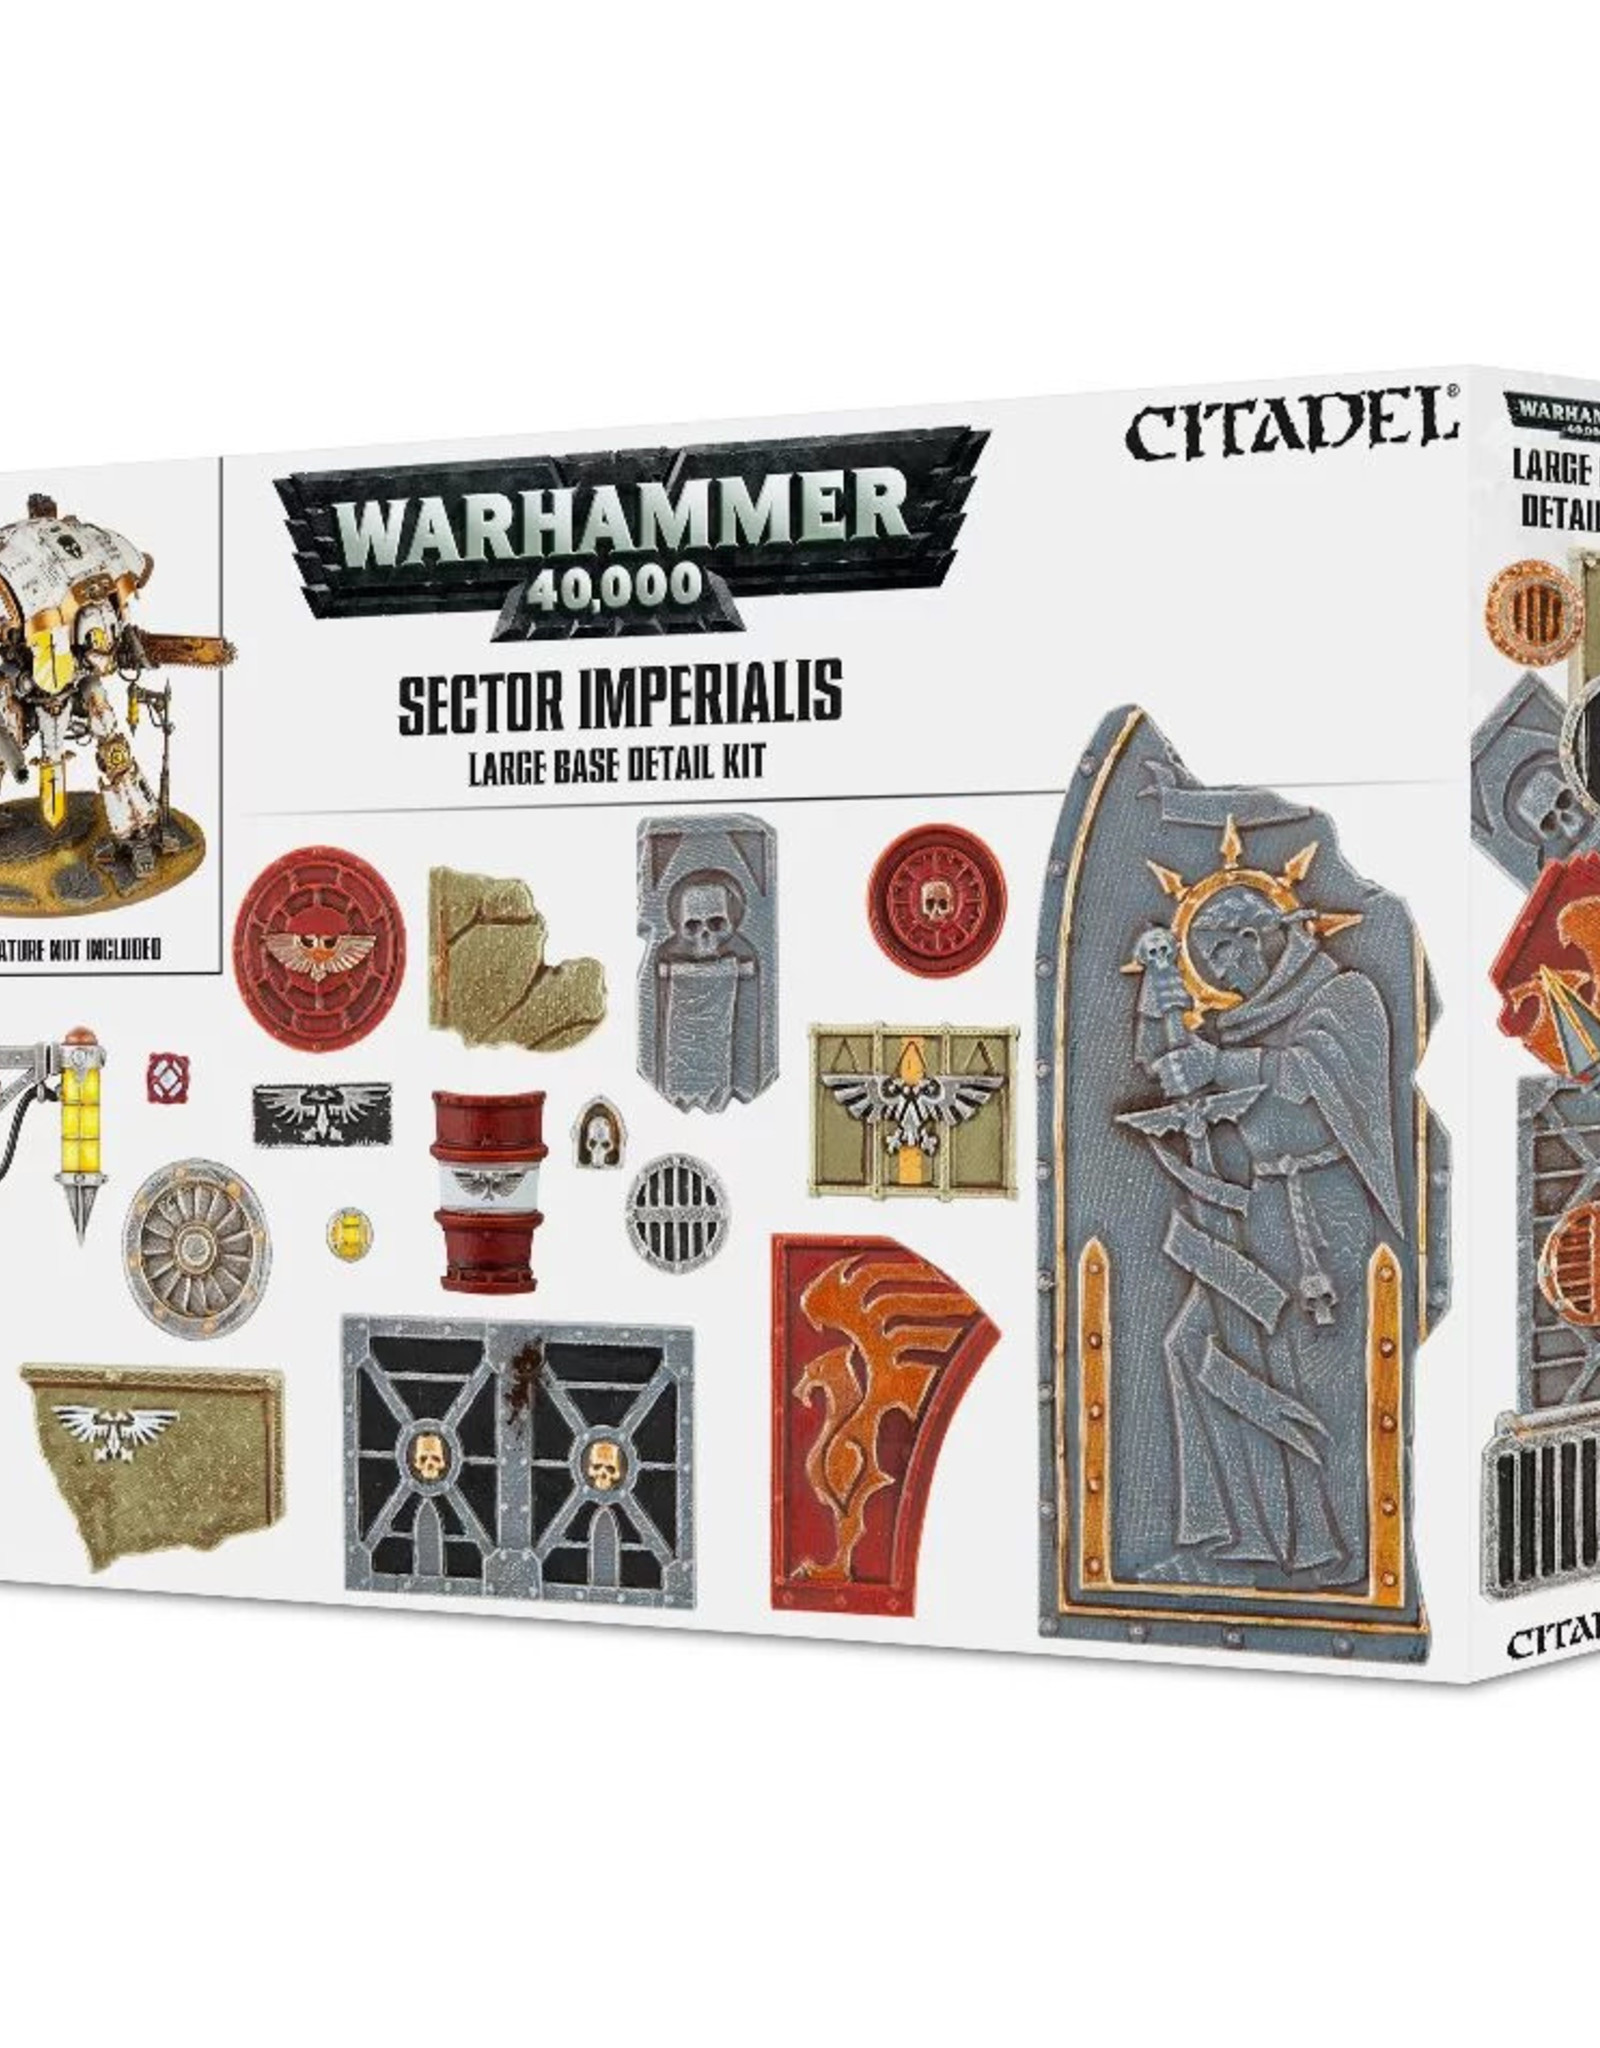 Warhammer 40K Sector Imperialis: Large Base Detail Kit